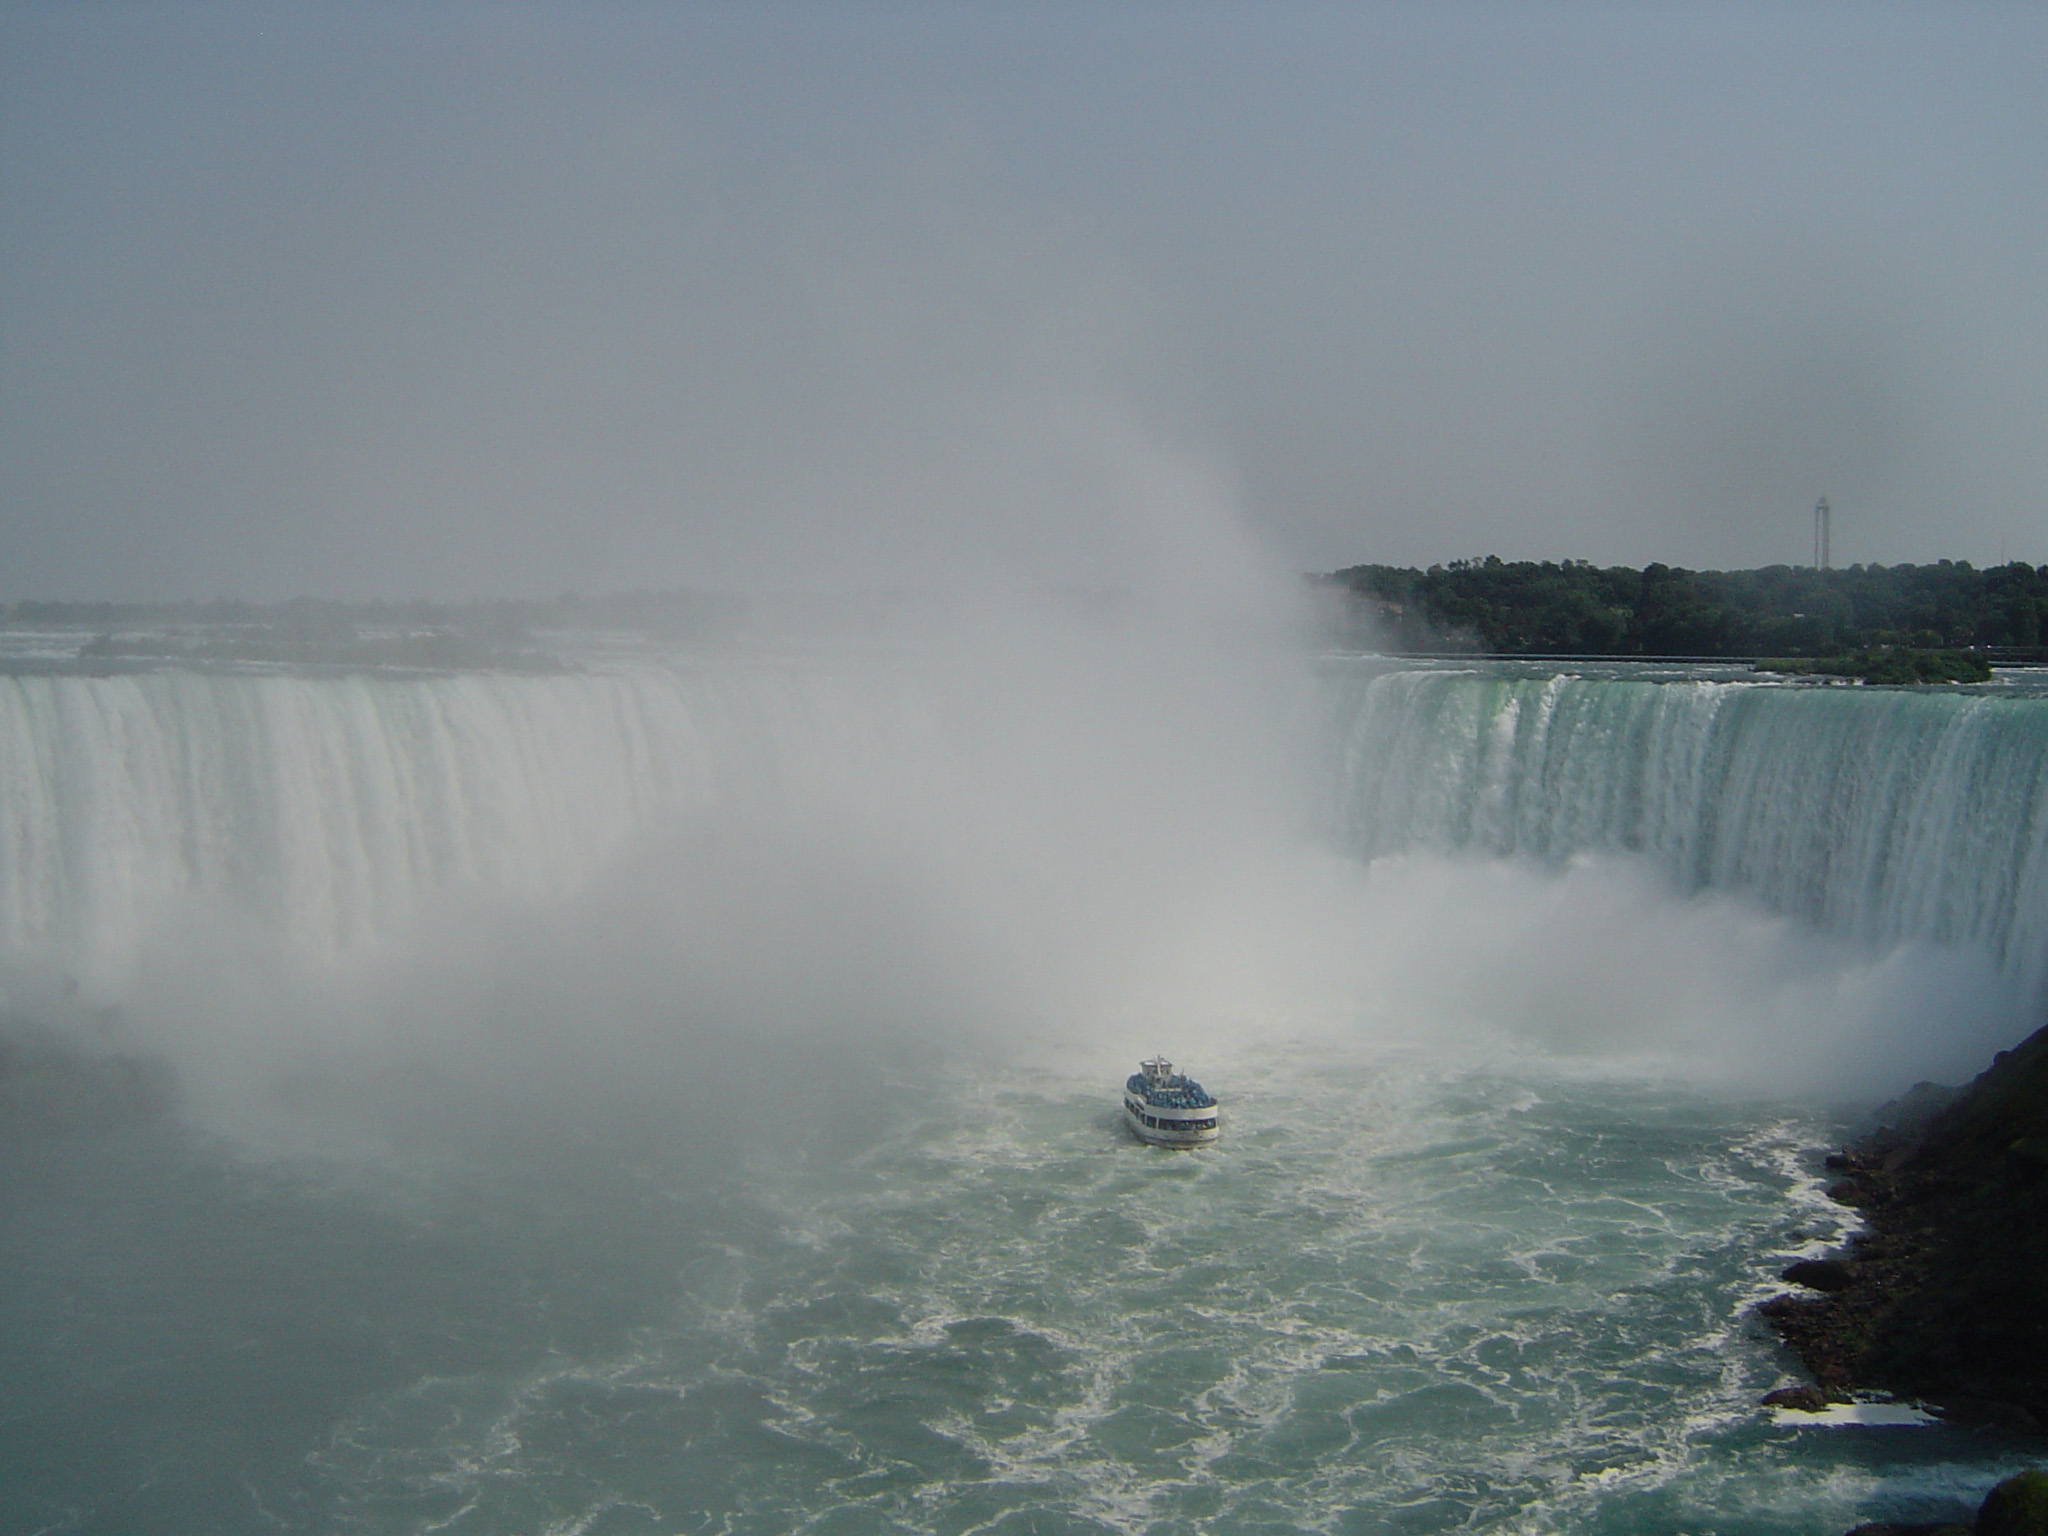 Maid of the Mist Tour Boat at Horseshoe Falls in Niagara Falls, Canada